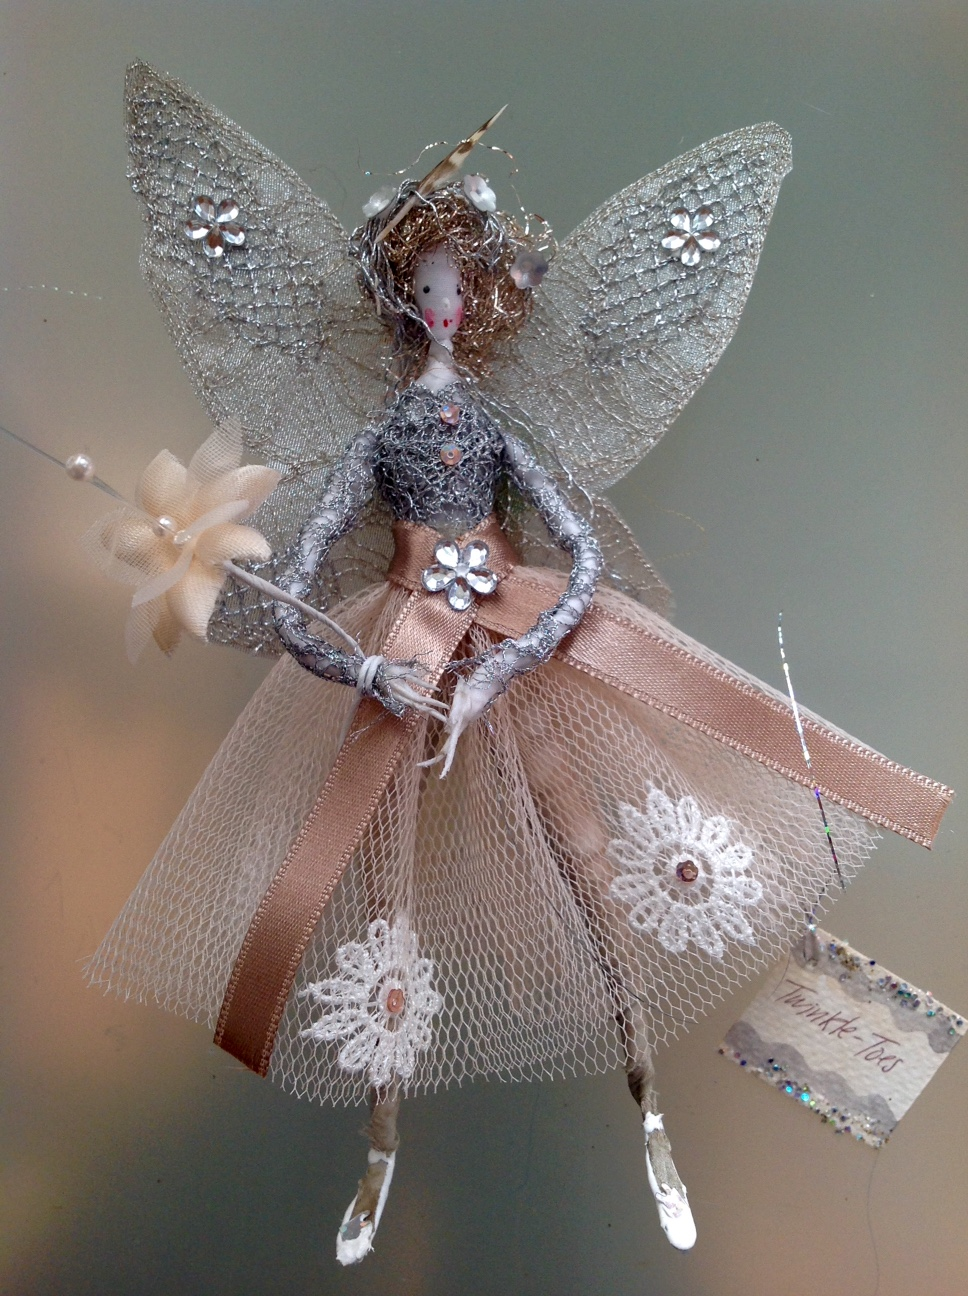 TWINKLE -TOES A 15cm fairy with a painted silk face , wearing a metallic lace top with a stiff net skirt embellished with lace flowers and sequins , her wings are embroidered and she has a tiny quail's feather in her hair. She comes in an organza bag with dried petals in it. £30 plus £3.50 p&p.